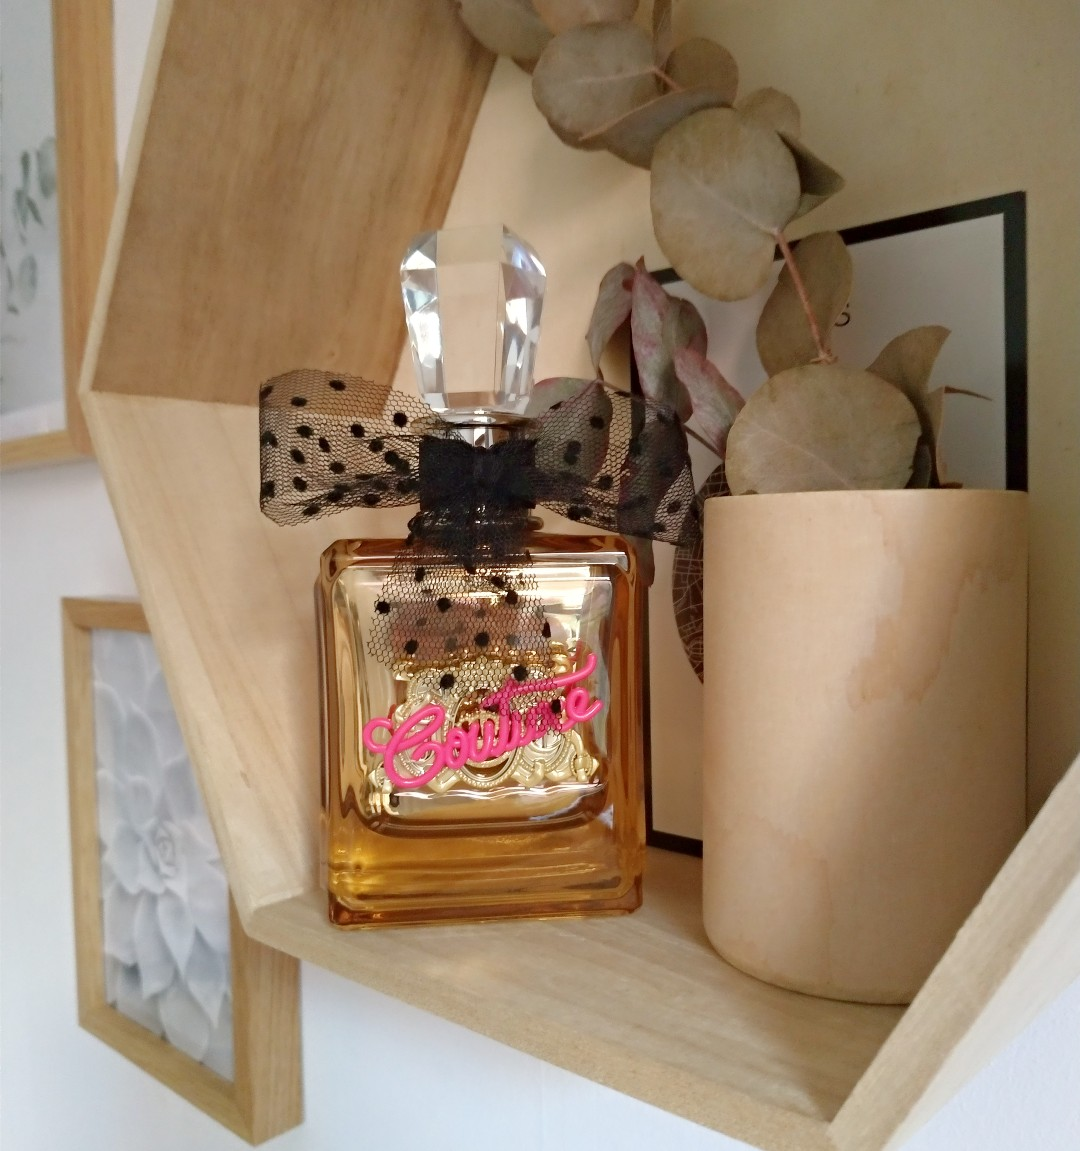 gold couture viva la juicy parfum